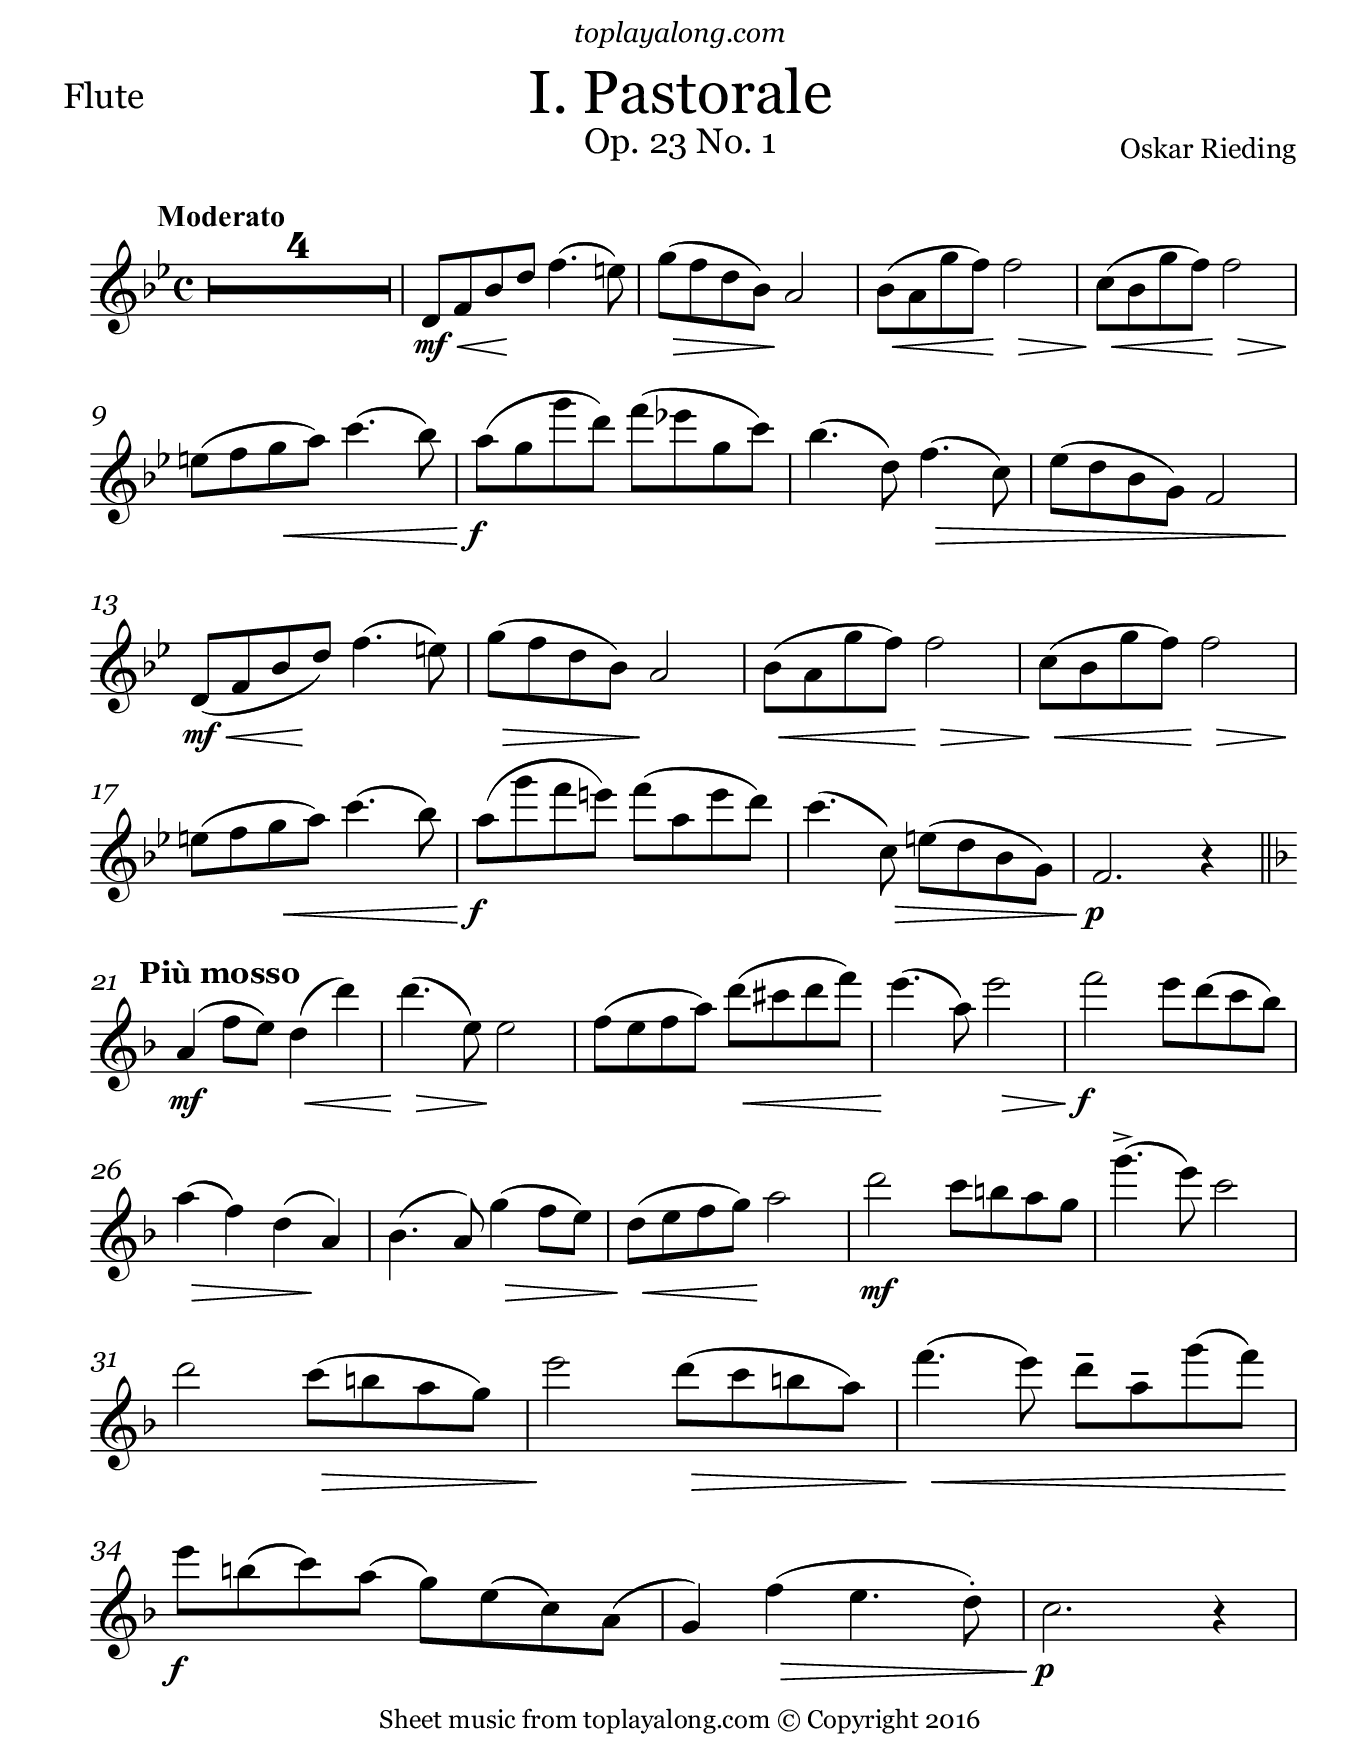 Pastorale Op. 23 No. 1 by Rieding. Sheet music for Flute, page 1.